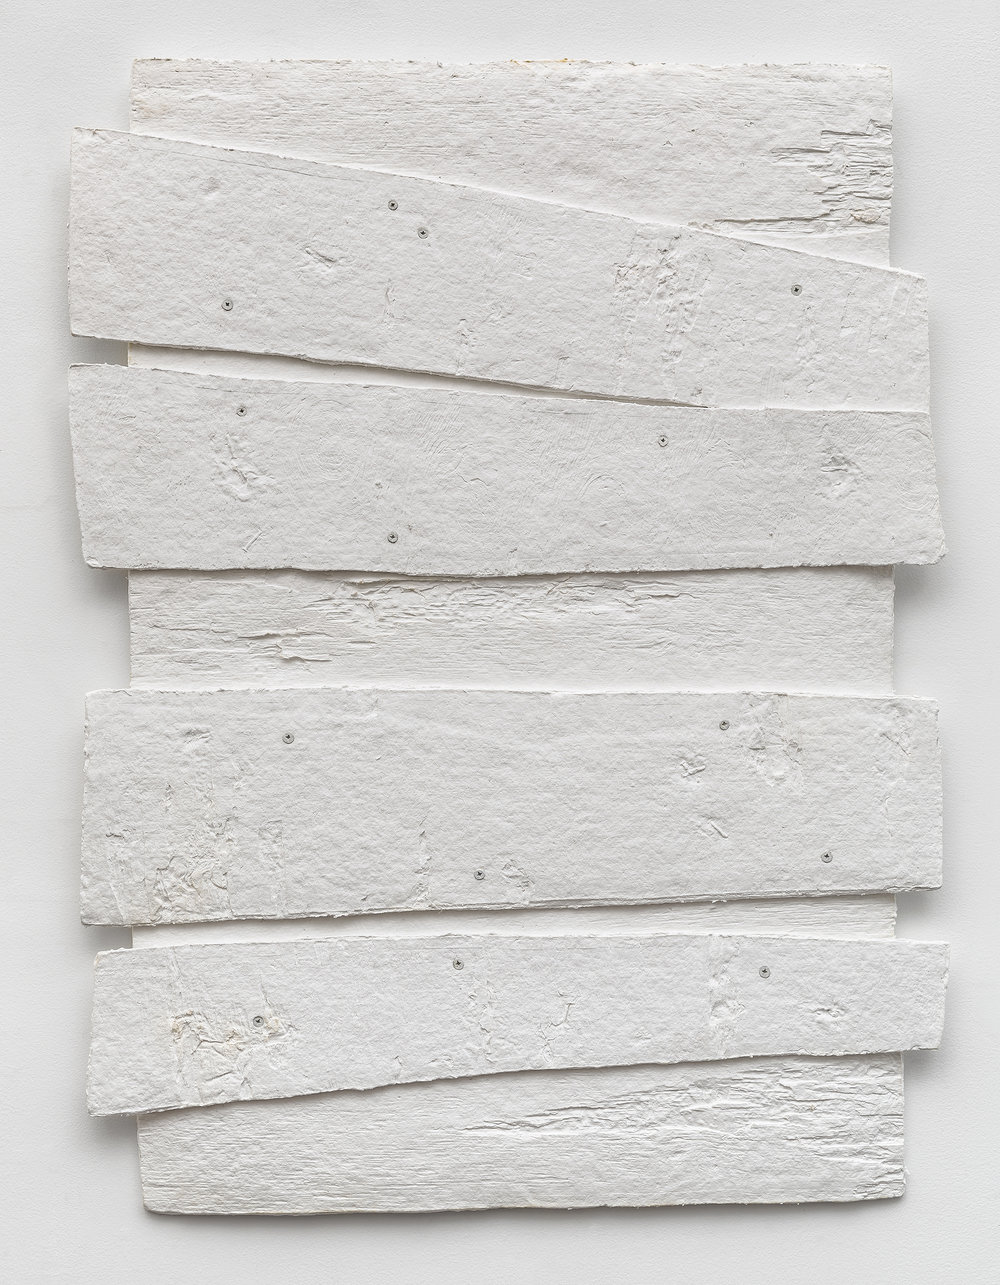 Diana Shpungin   Don't Let The Light In 4 (White) , 2018  Casting cotton paper pulp, linen paper   34 x 27 x 1 inches  Image copyright and courtesy of Etienne Frossard.